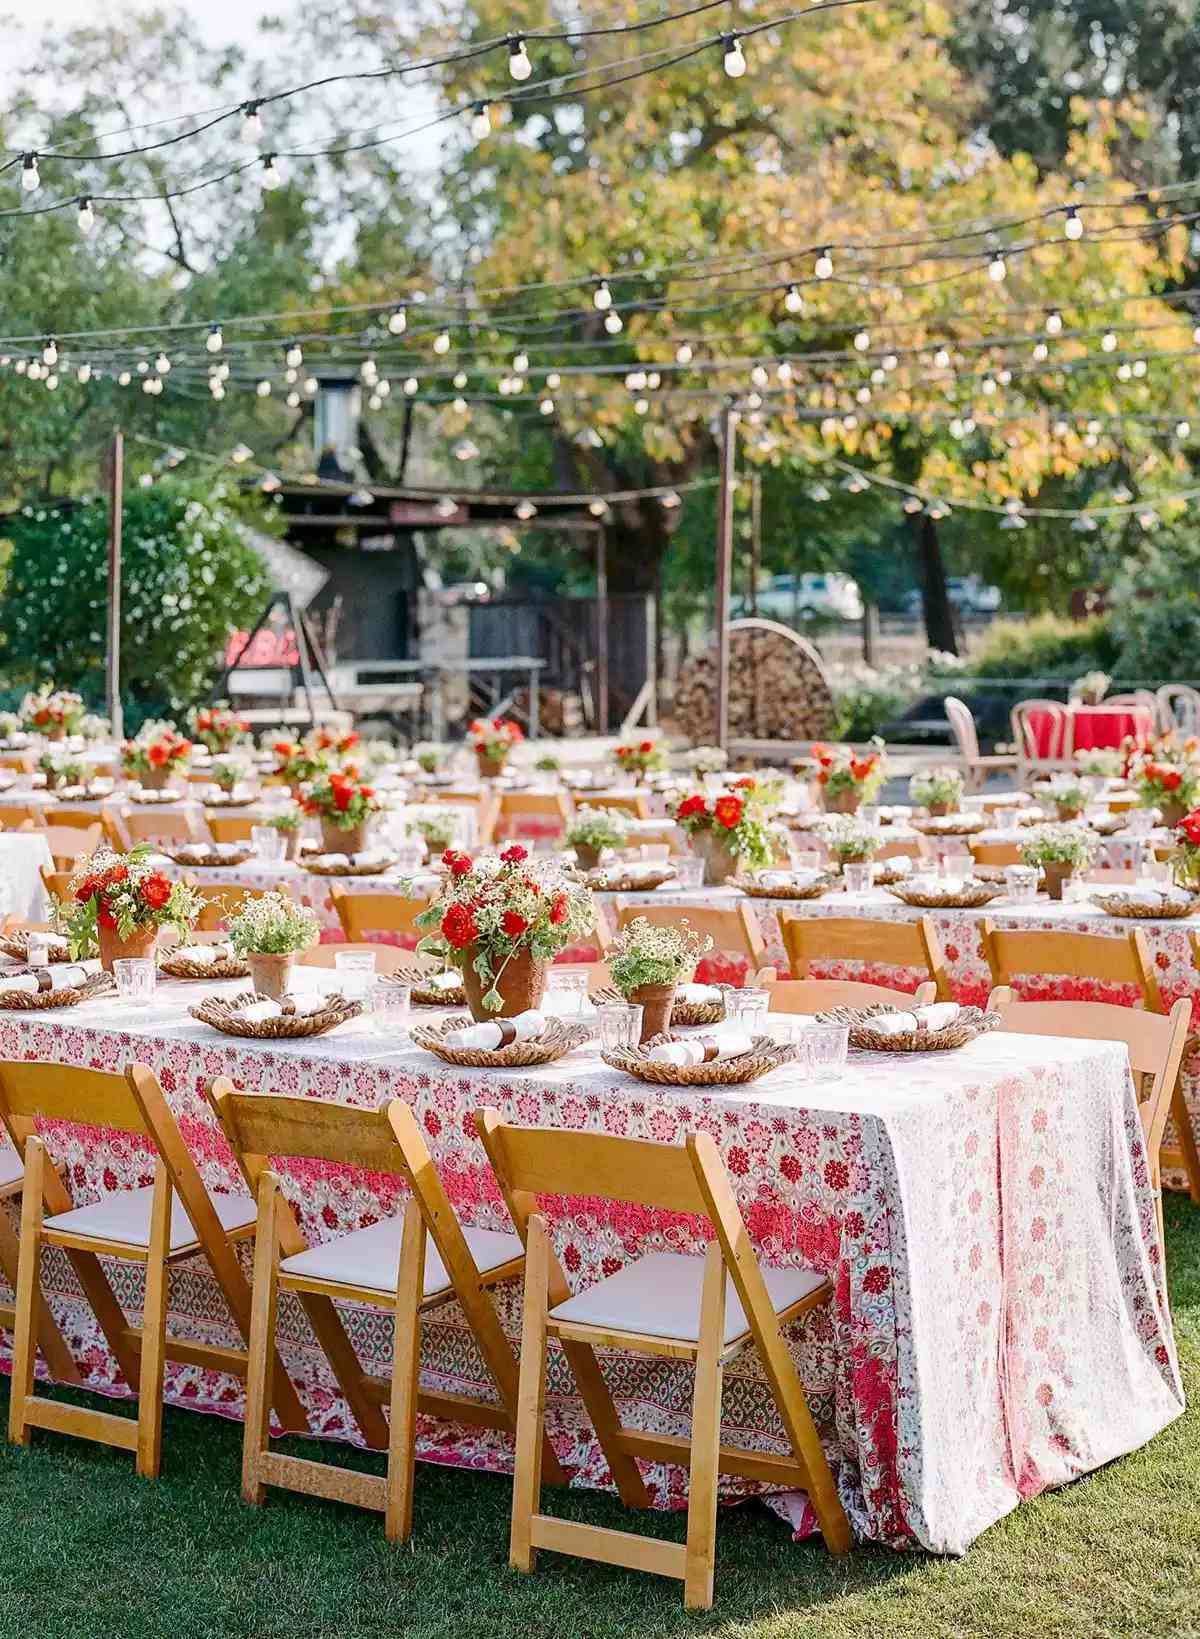 wedding reception with colorful tableclothes